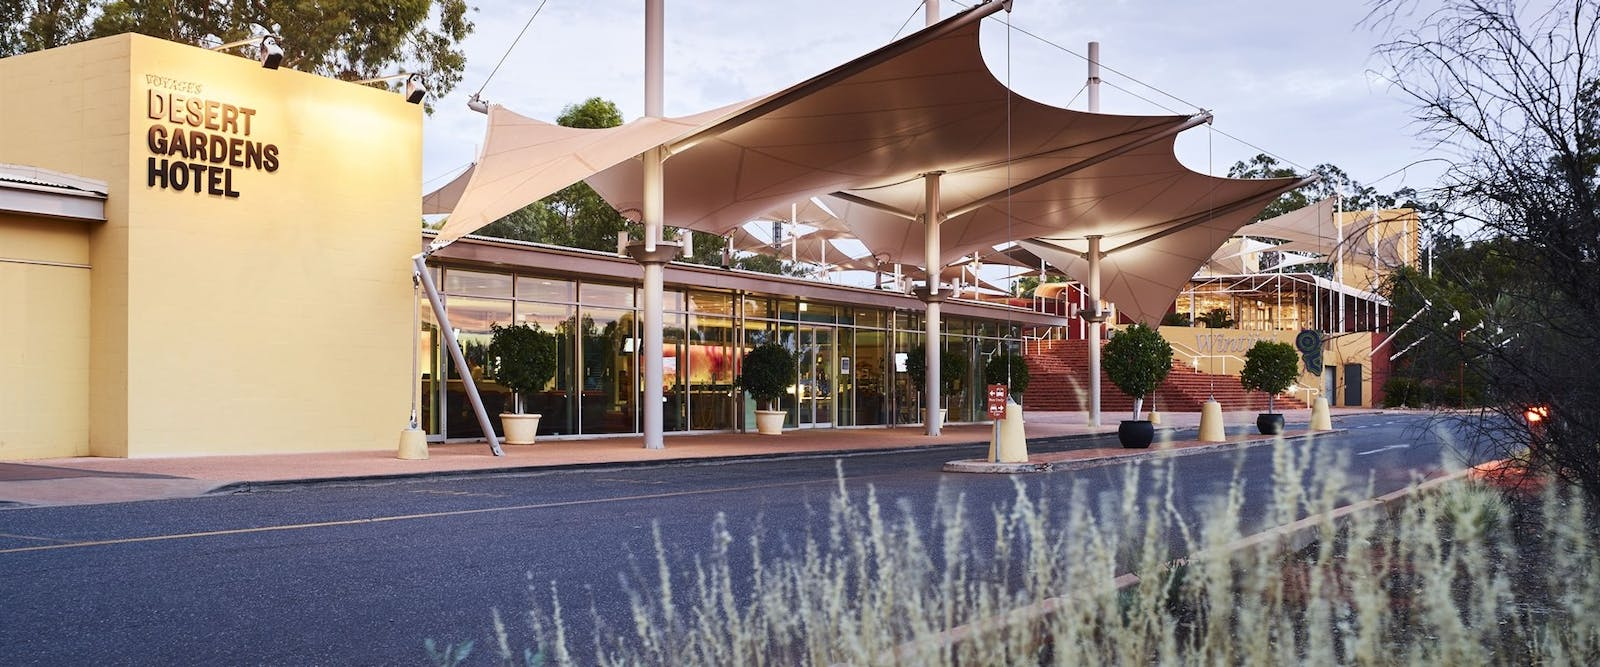 Voyages desert gardens hotel northern territory world Alice springs swimming pool opening hours